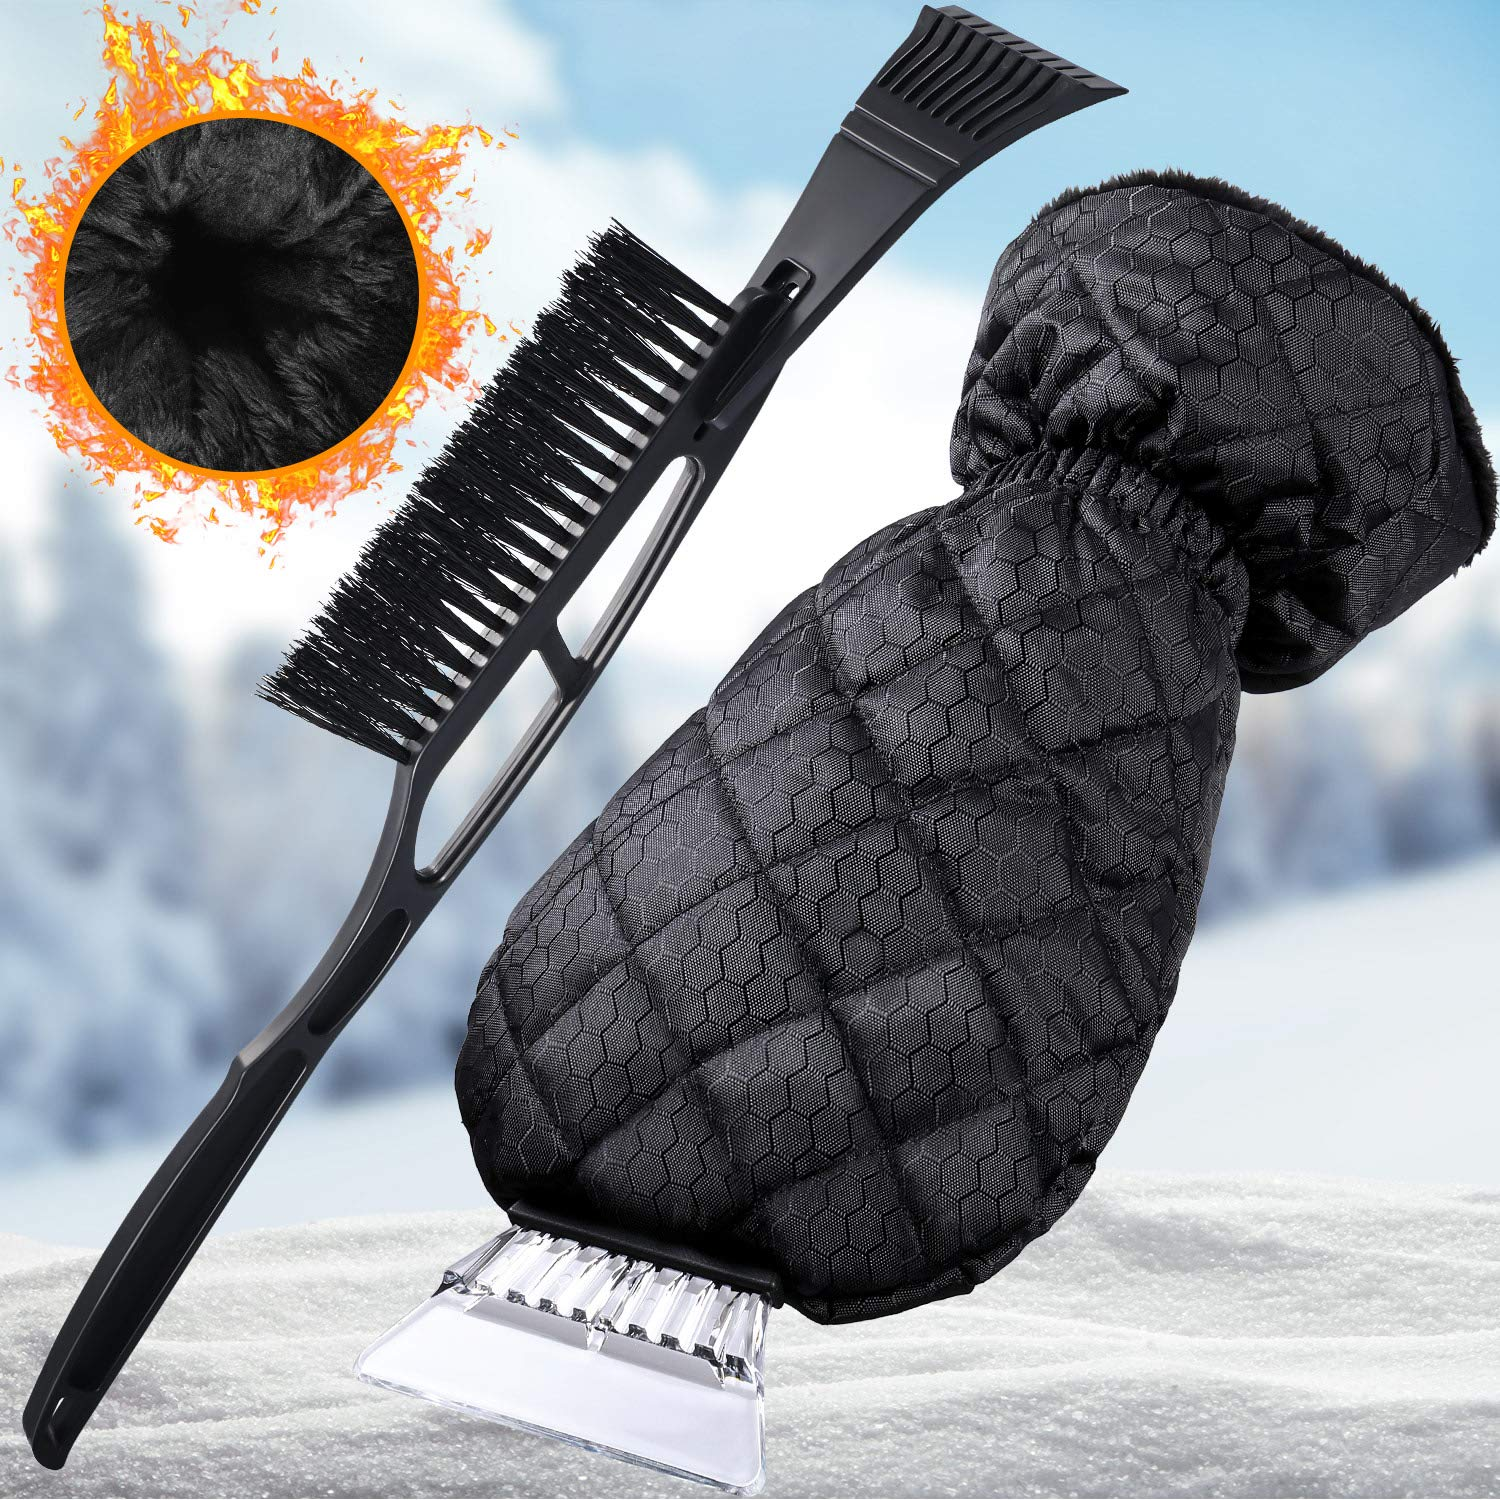 Frienda 2 Pieces Ice Scraper Mitt Snow Waterproof Remover and Black Snow Brush with Windshield Ice Snow Frost Scrapers for Car Roof Bumpers Windshield